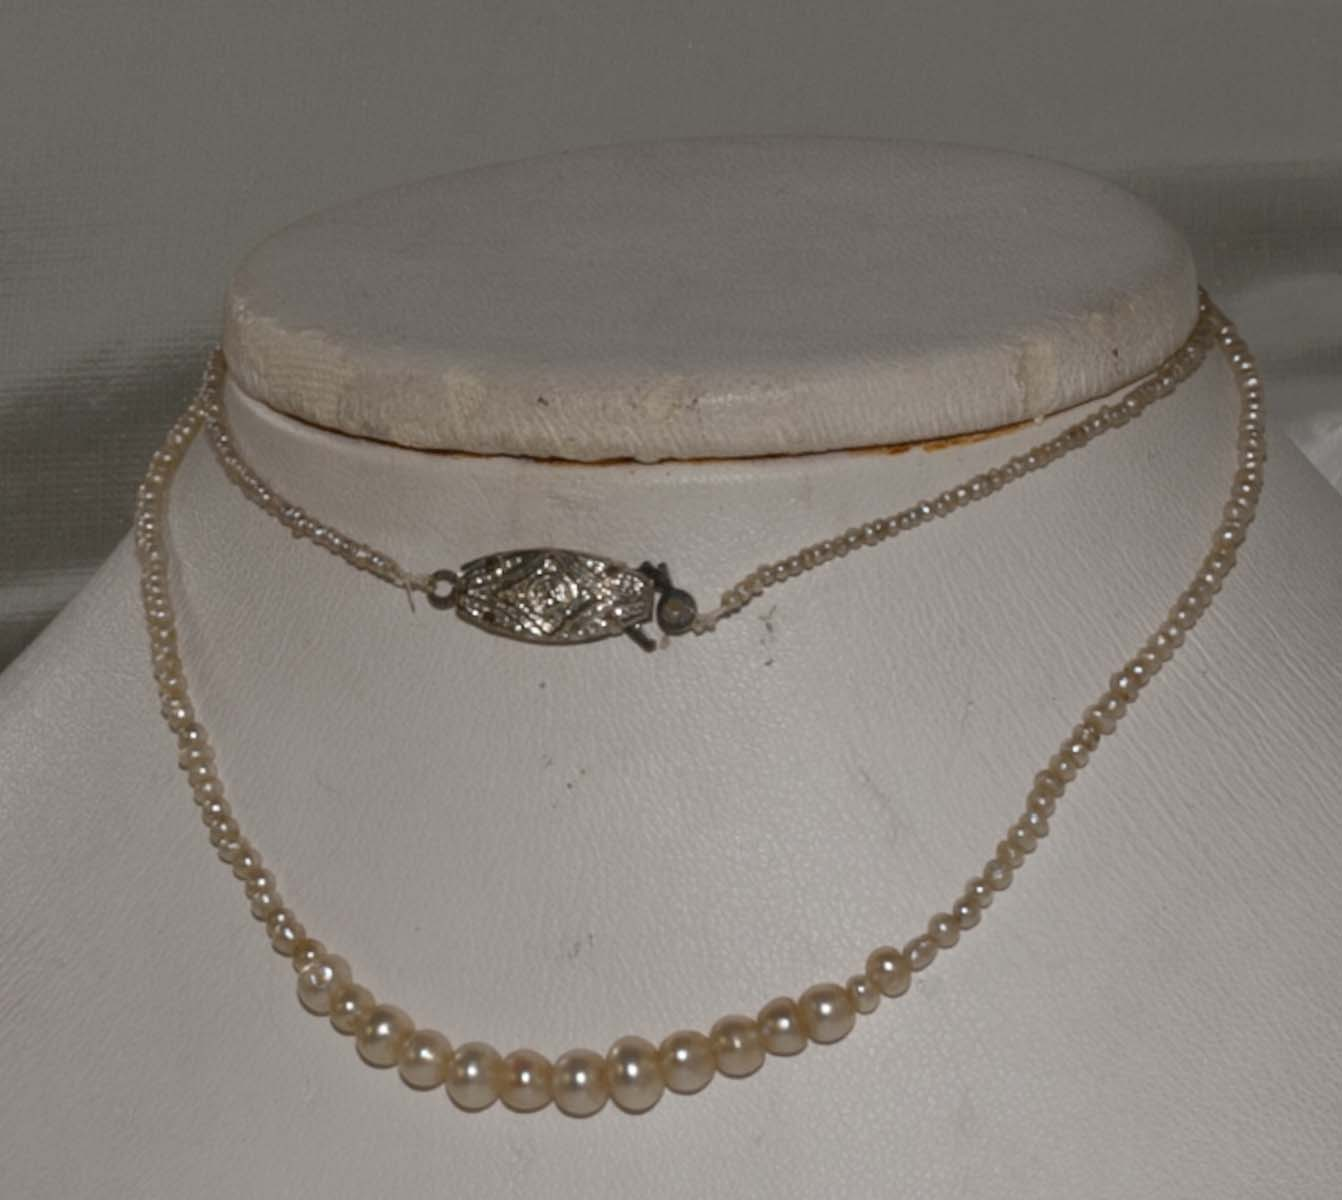 Necklace Seed pearl and Grad Pearls c1900